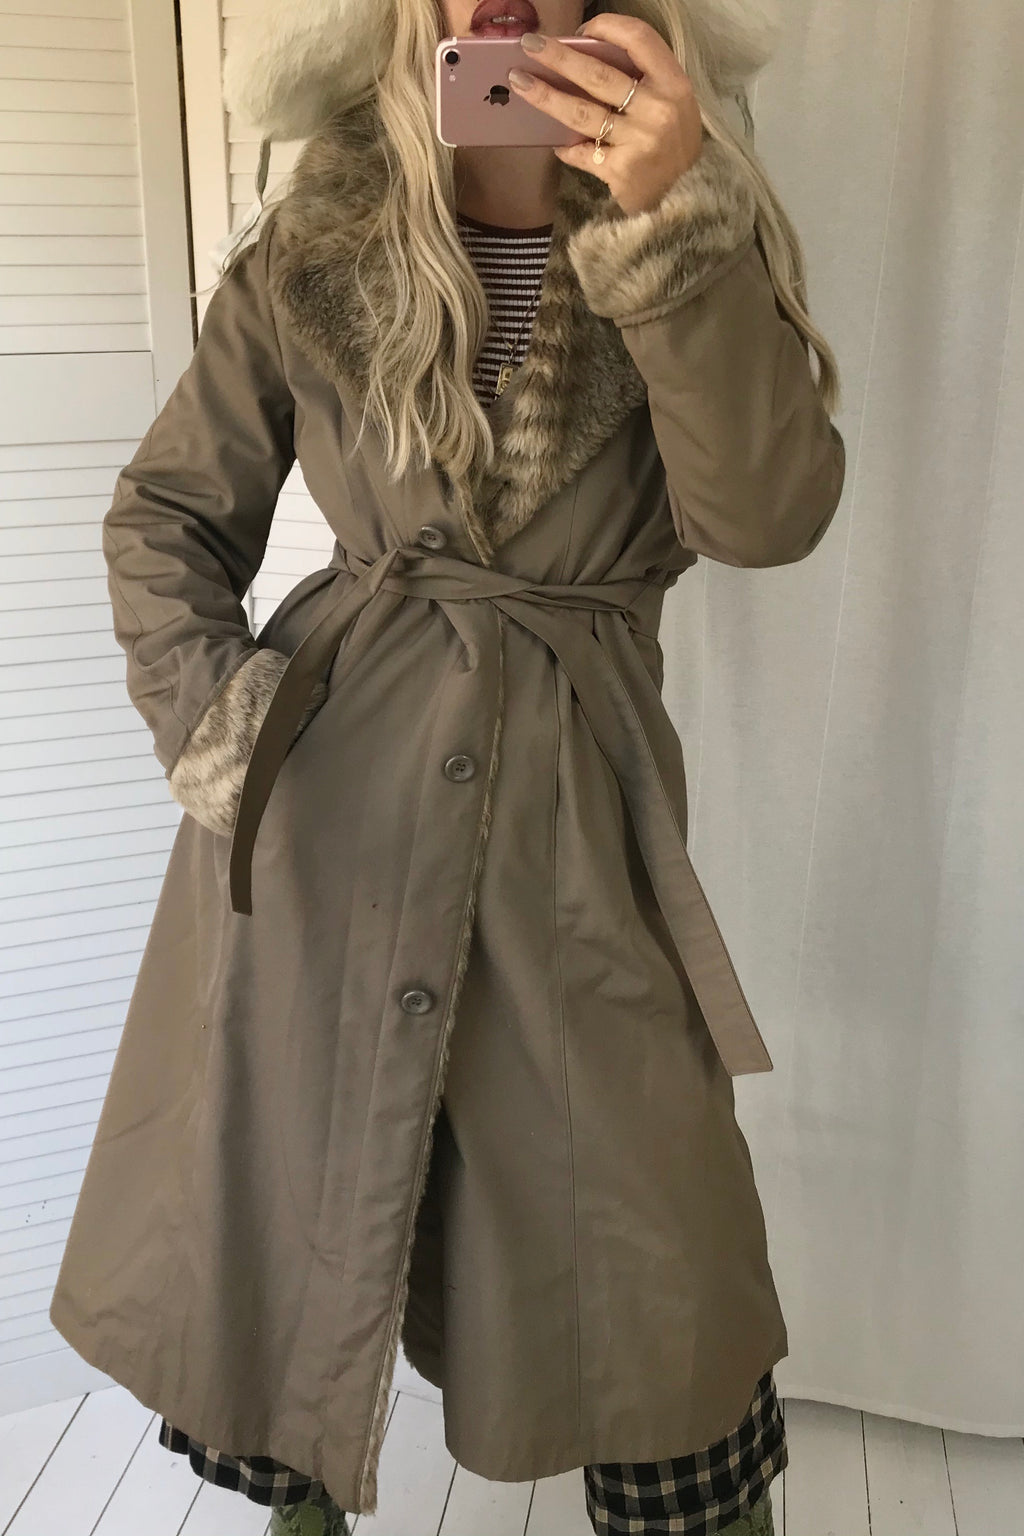 Gorgeous Vintage 70s Tawny Brown Trench Jacket With Faux Fur Collar, Cuffs & Lining